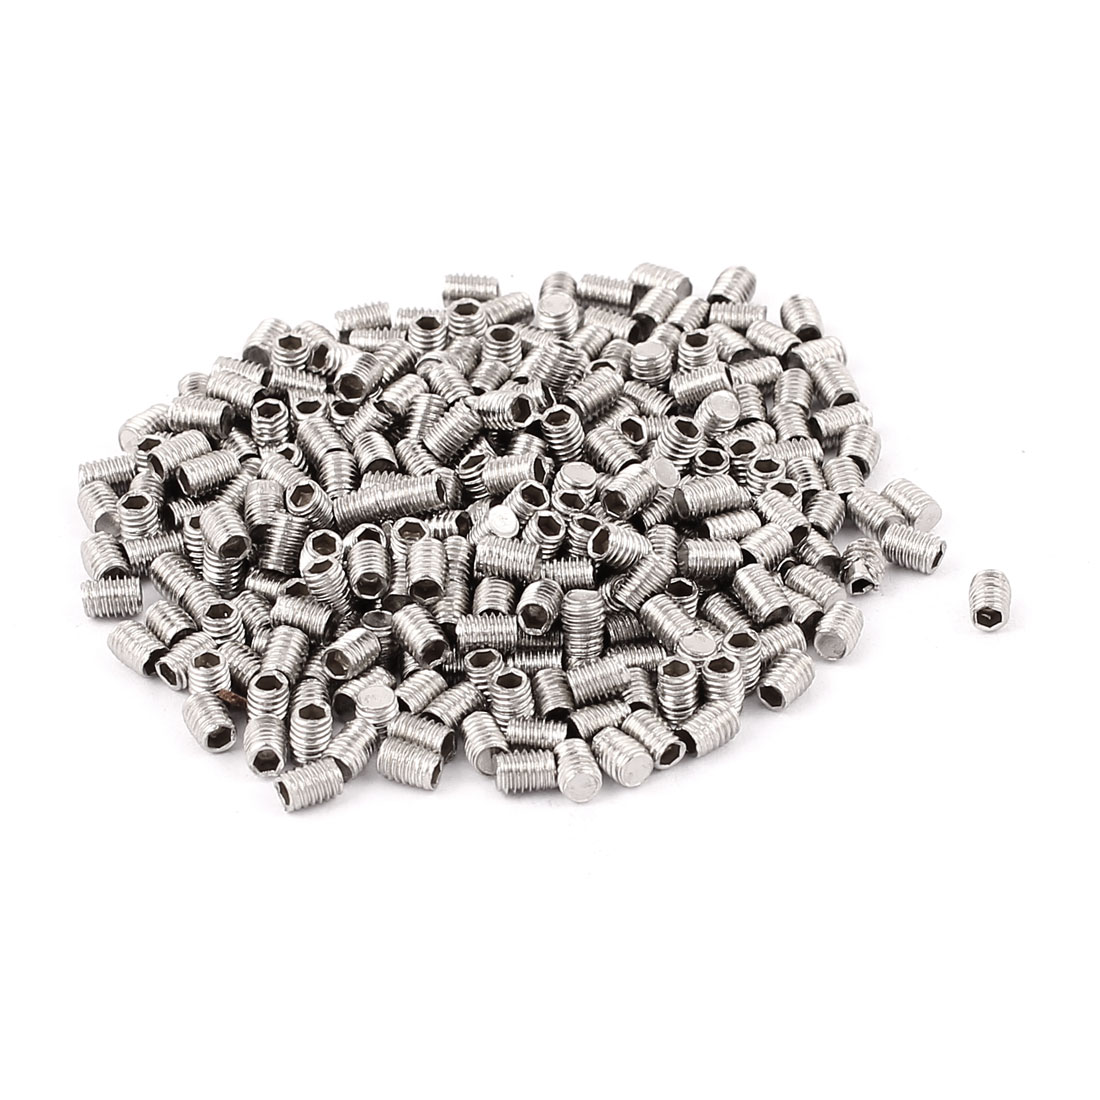 Bolt Base Stainless Steel 3mm Thread Flat End Hex Socket Grub Screws 300pcs